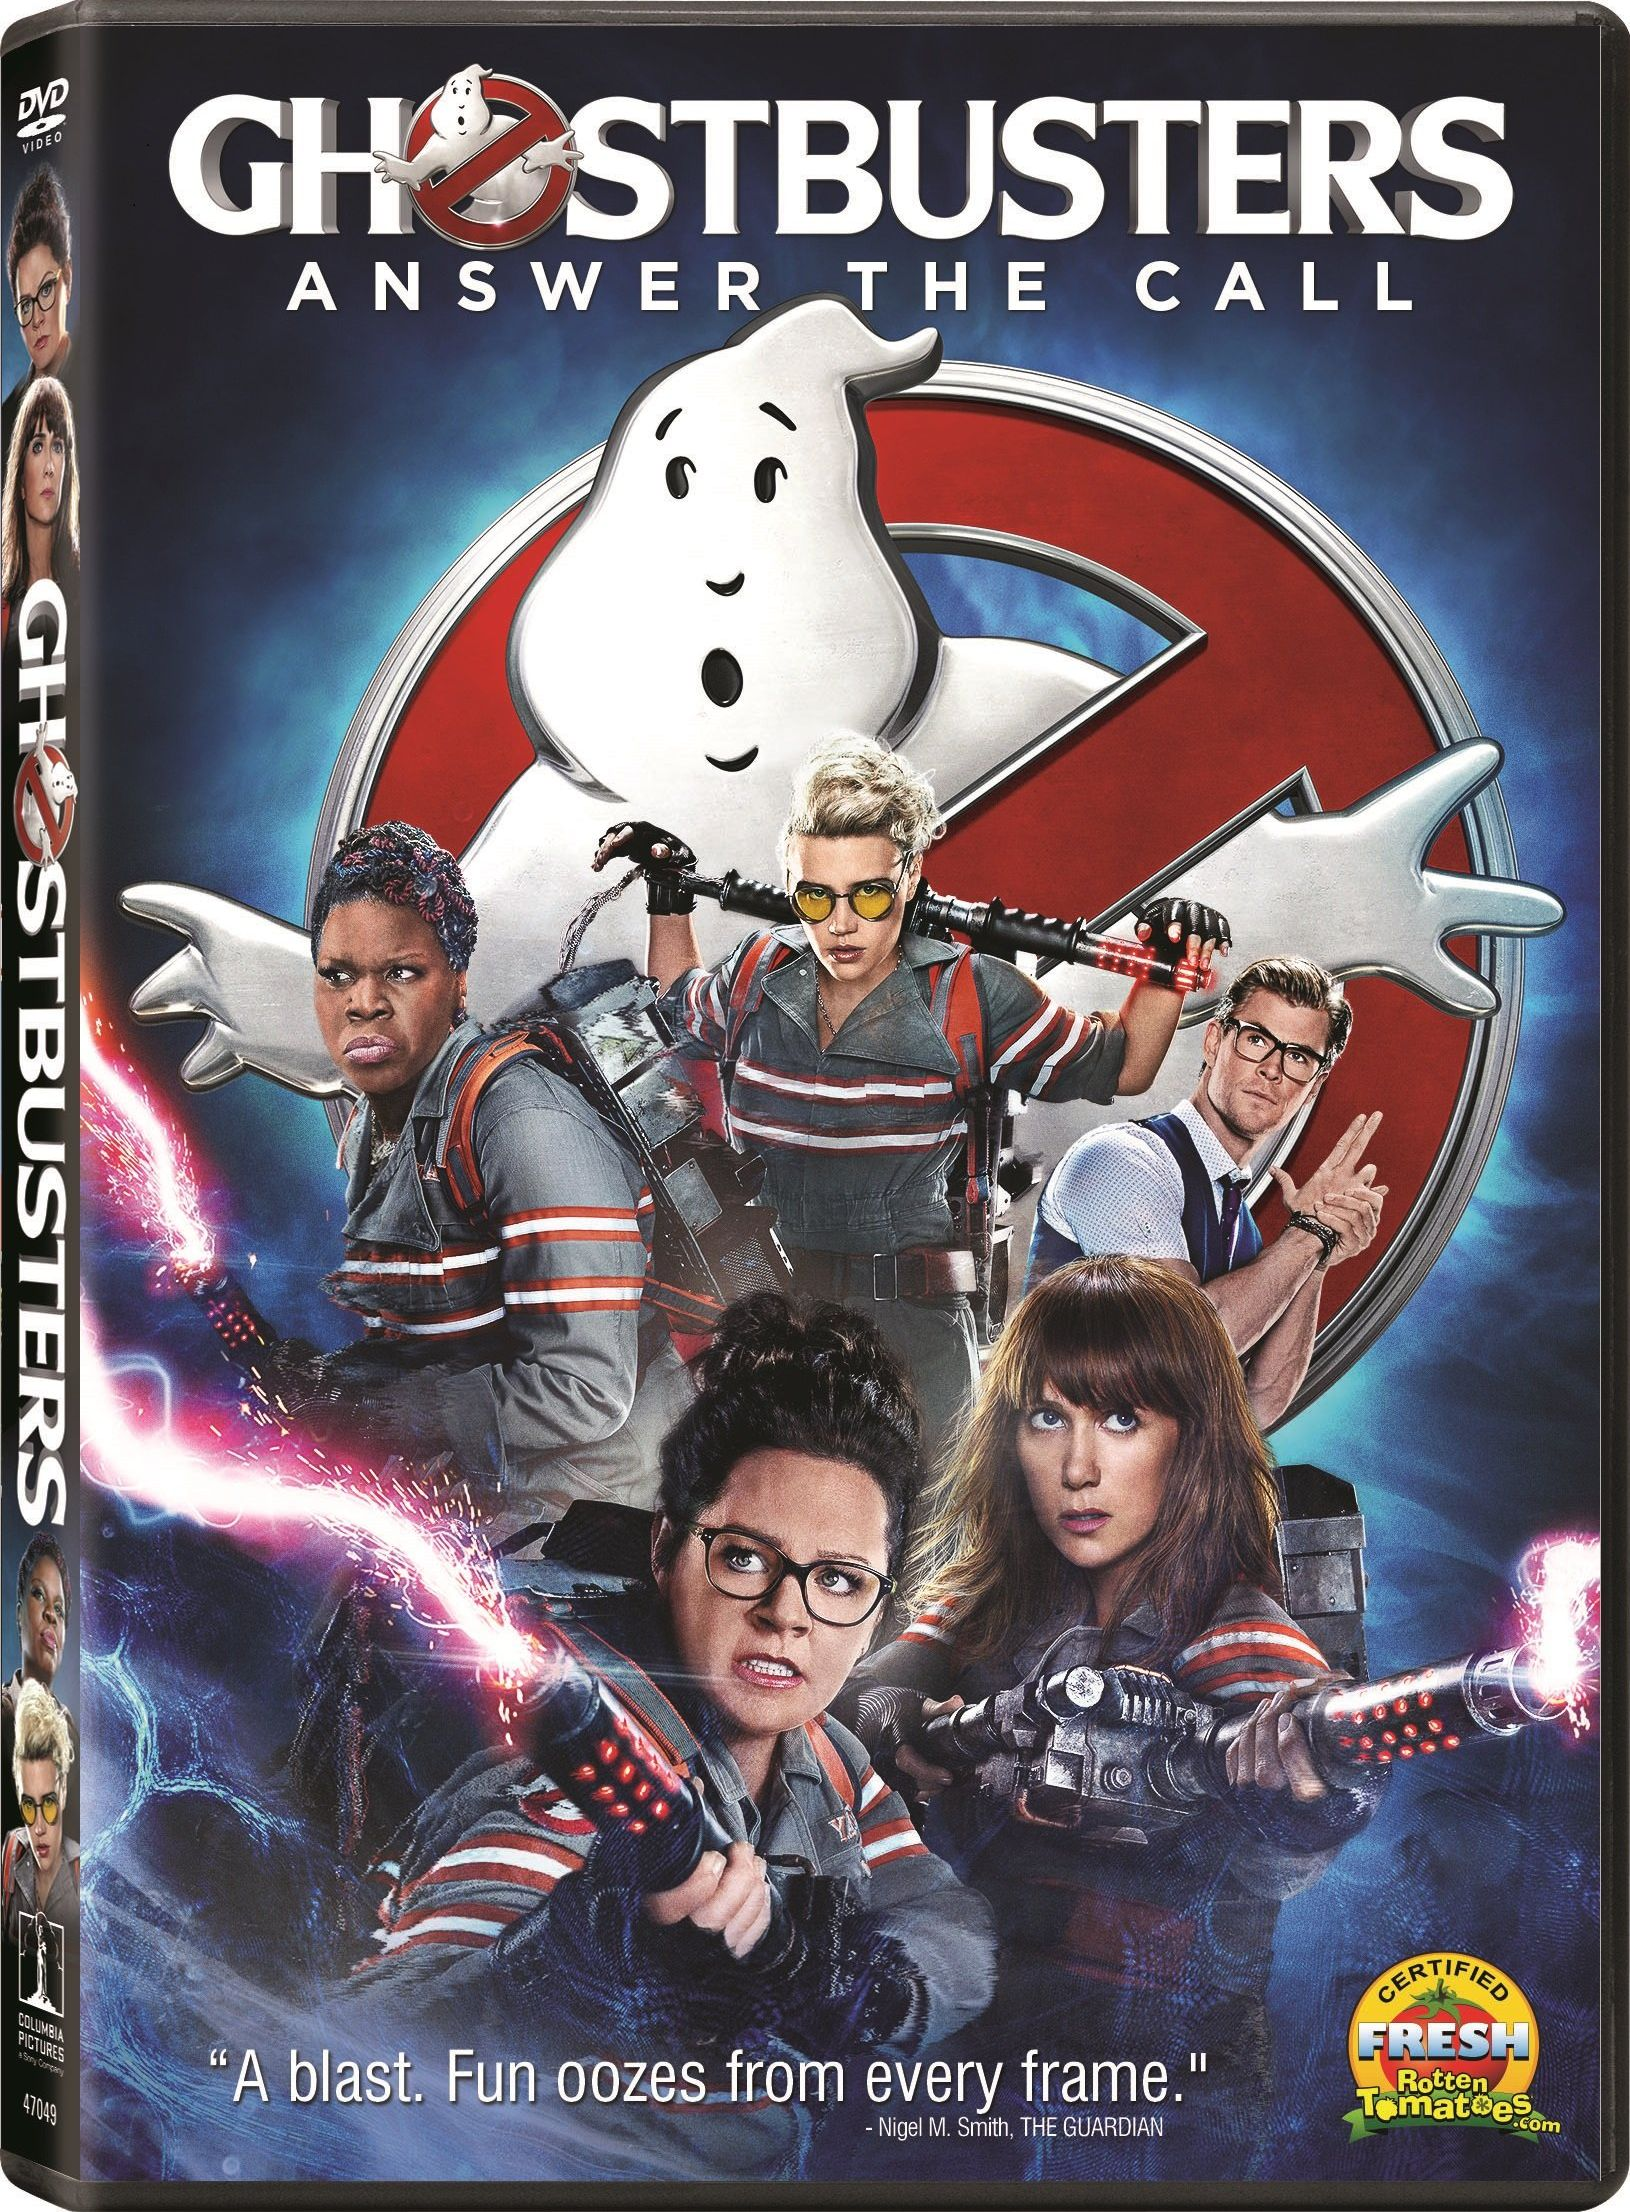 Ghostbusters DVD Release Date October 11 2016